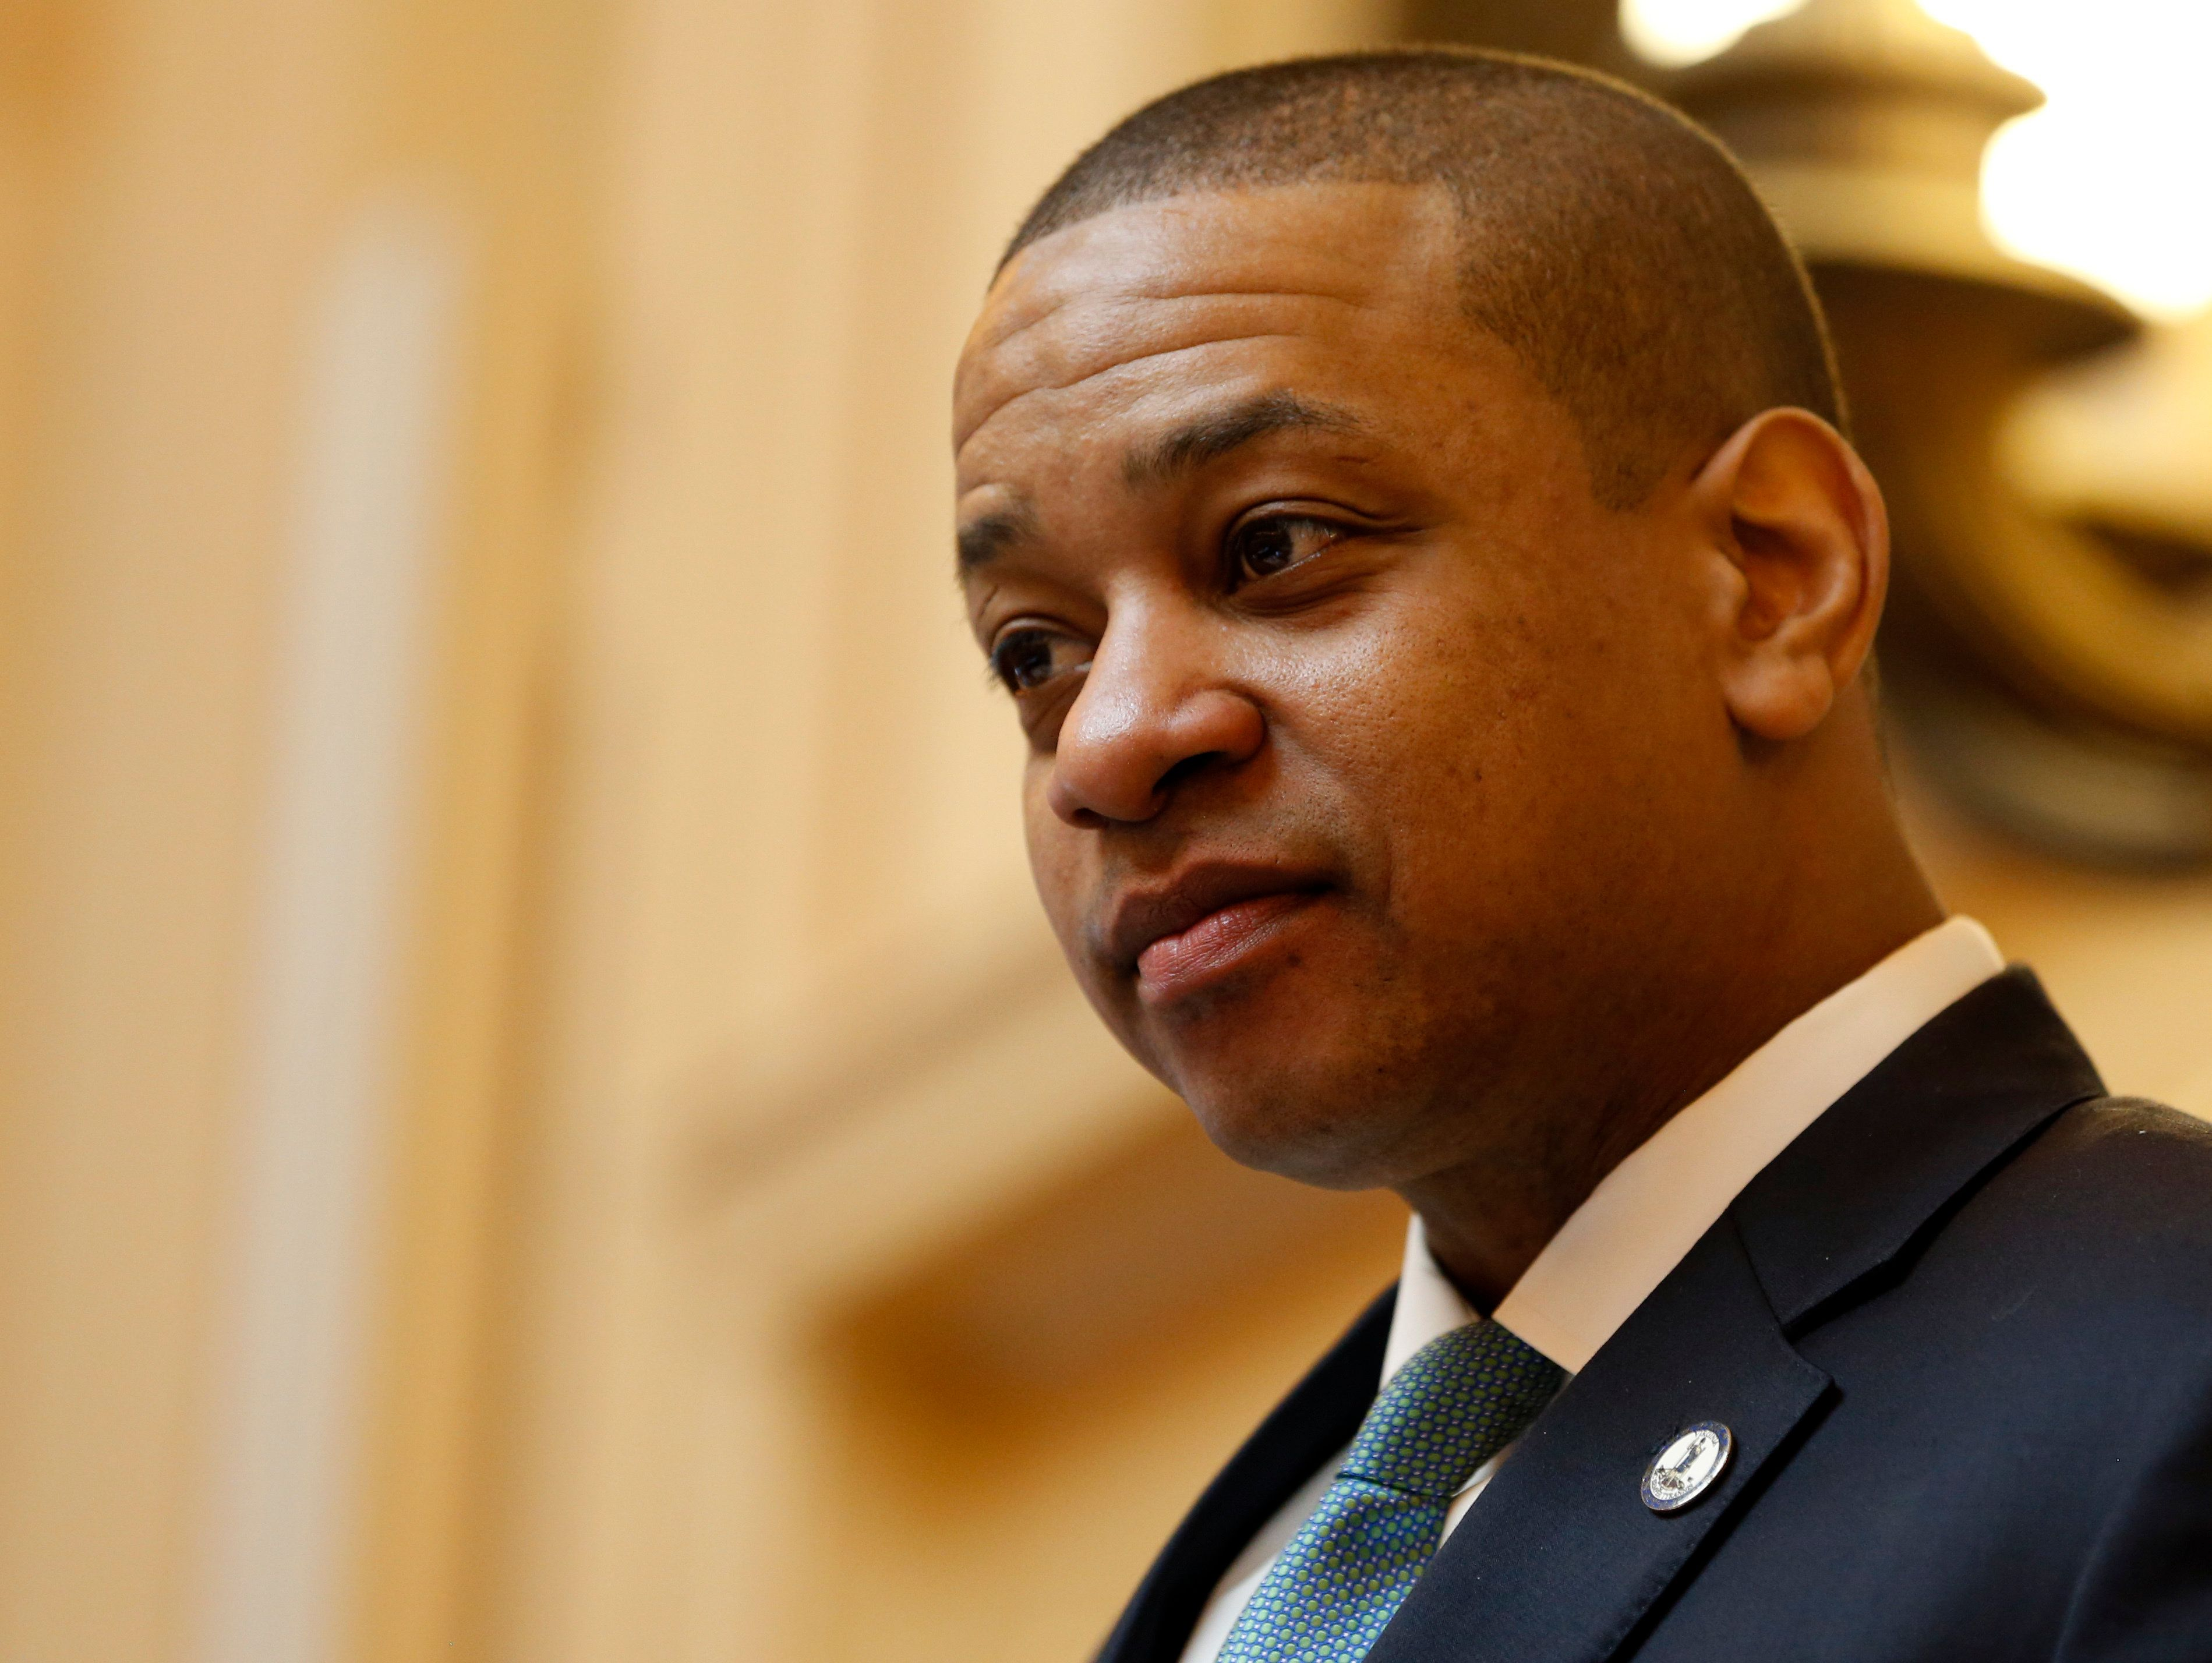 Justin Fairfax's Law Firm Places Him On Leave Pending Investigation